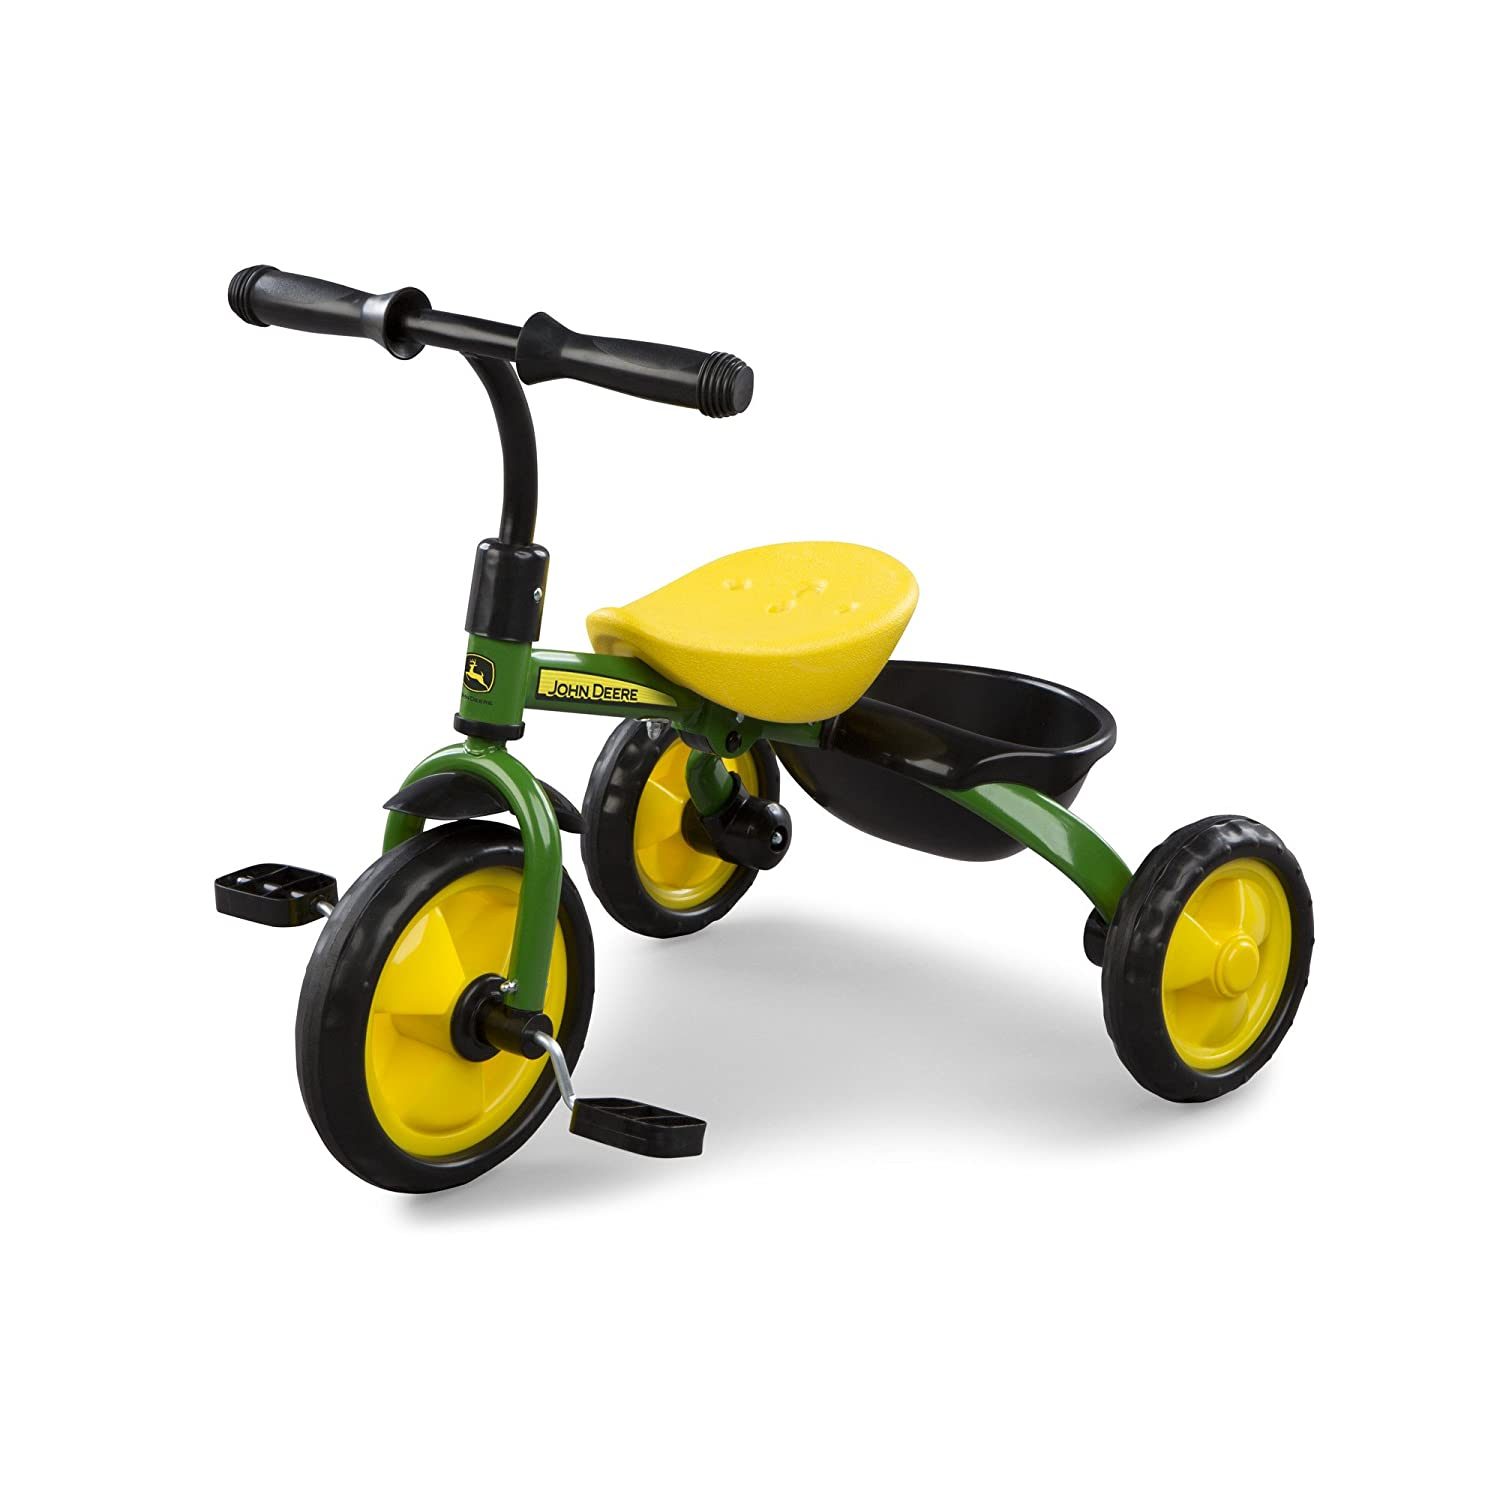 amazon ertl john deere steel tricycle グリーン 46395 三輪車